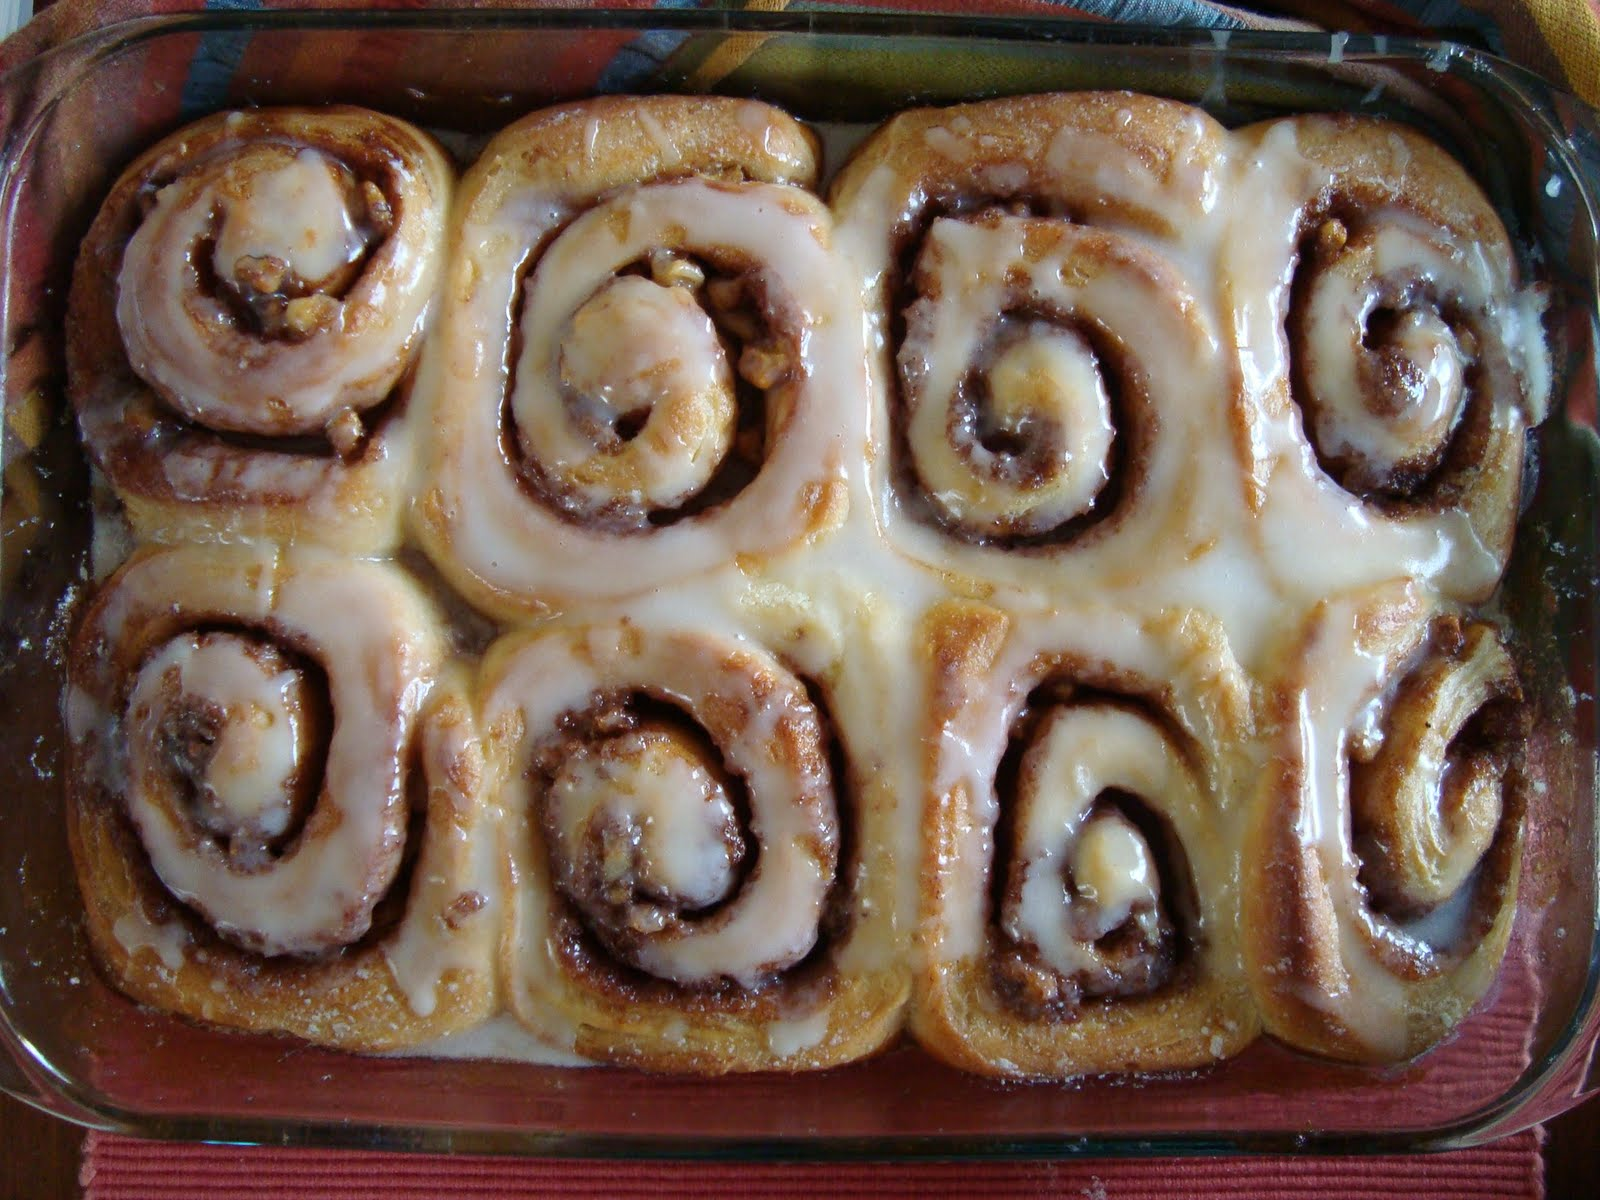 ... rolls pages it comes to breads rolls cinnamon rolls with cream